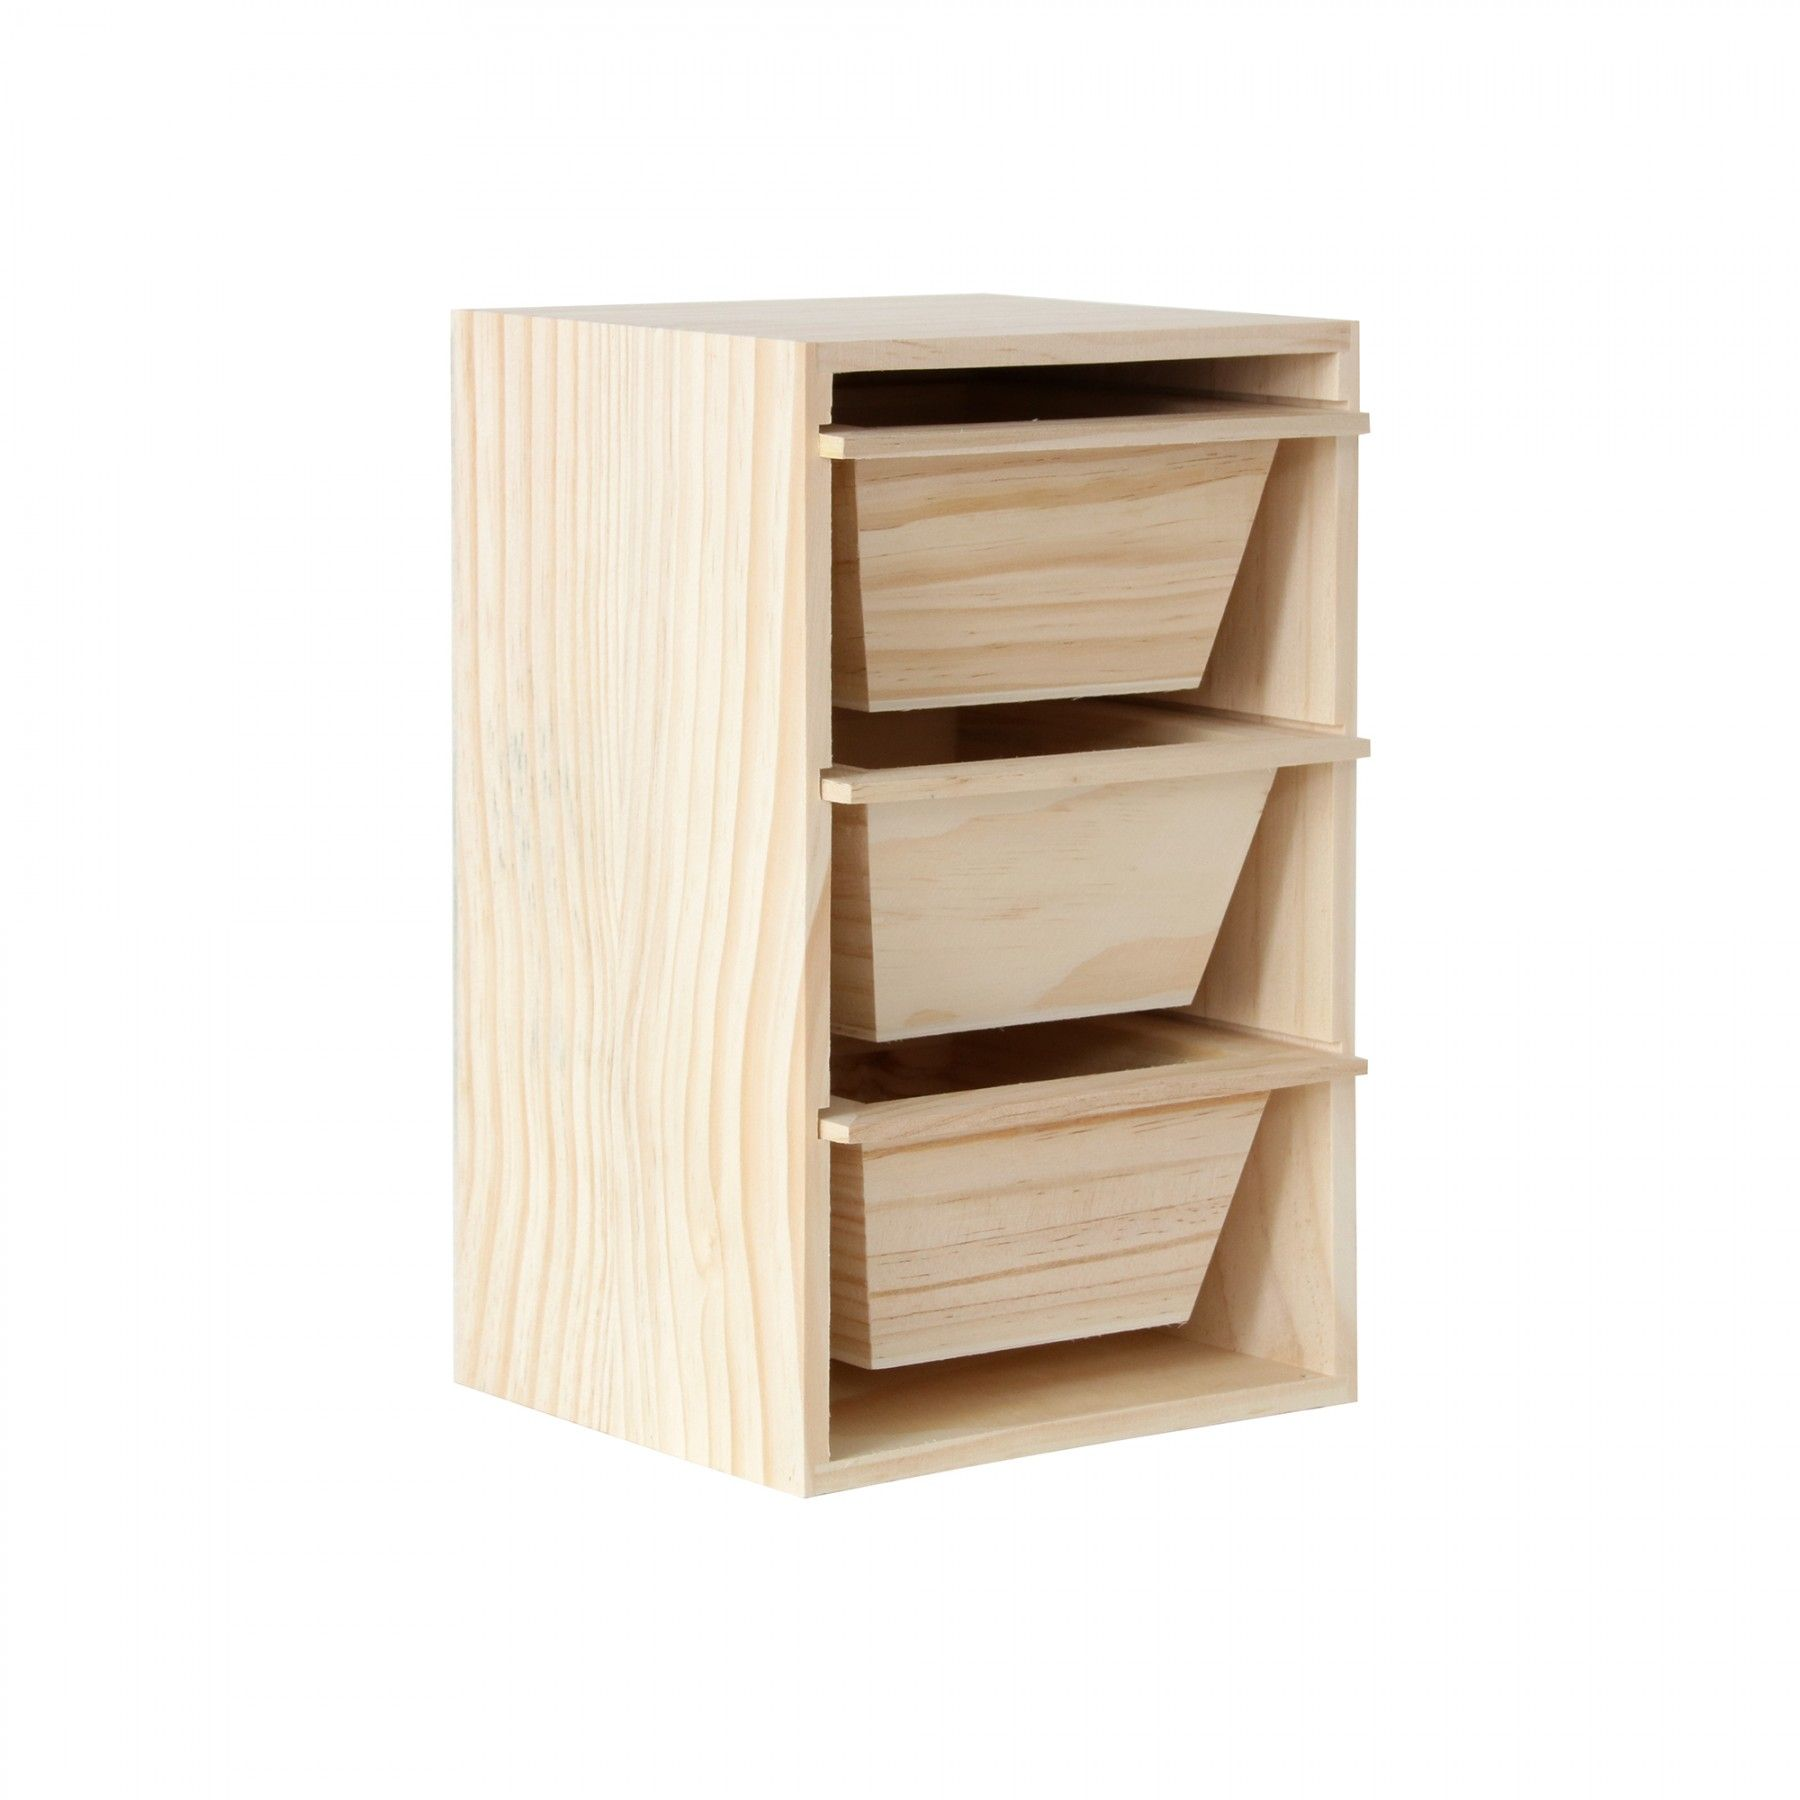 Mind Blowing Small Wooden Cabinet With Drawers Wooden Cabinets